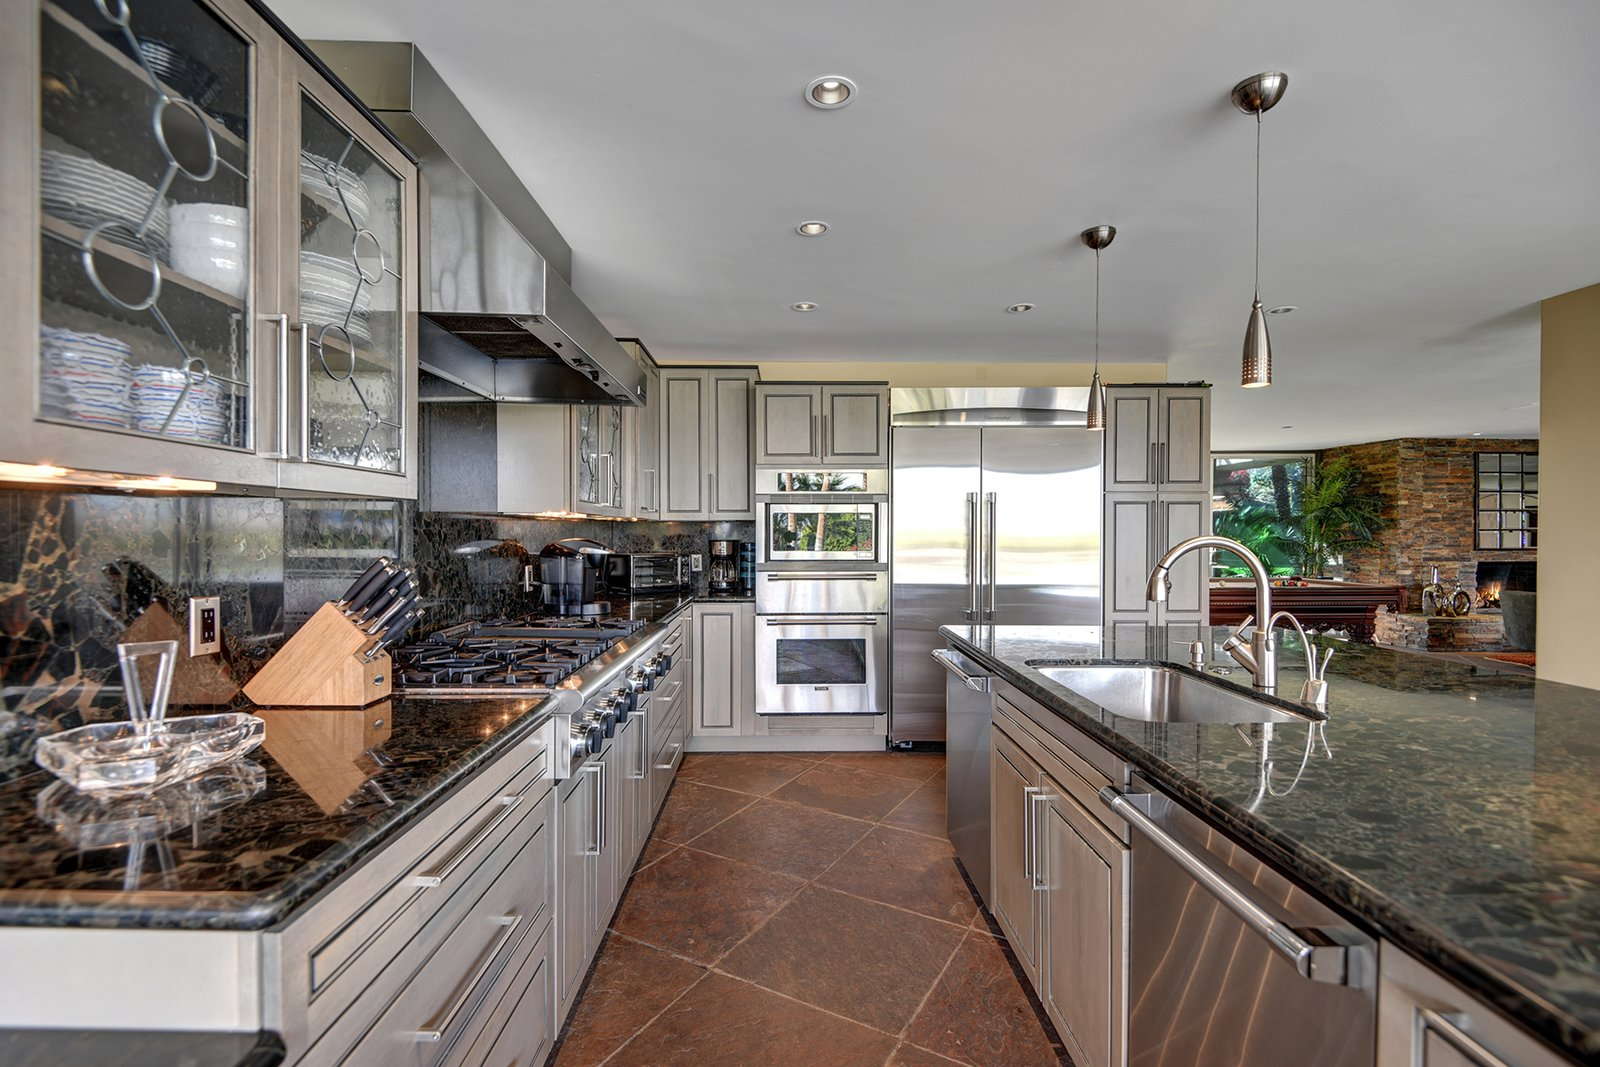 Bing Crosby Rancho Mirage home kitchen